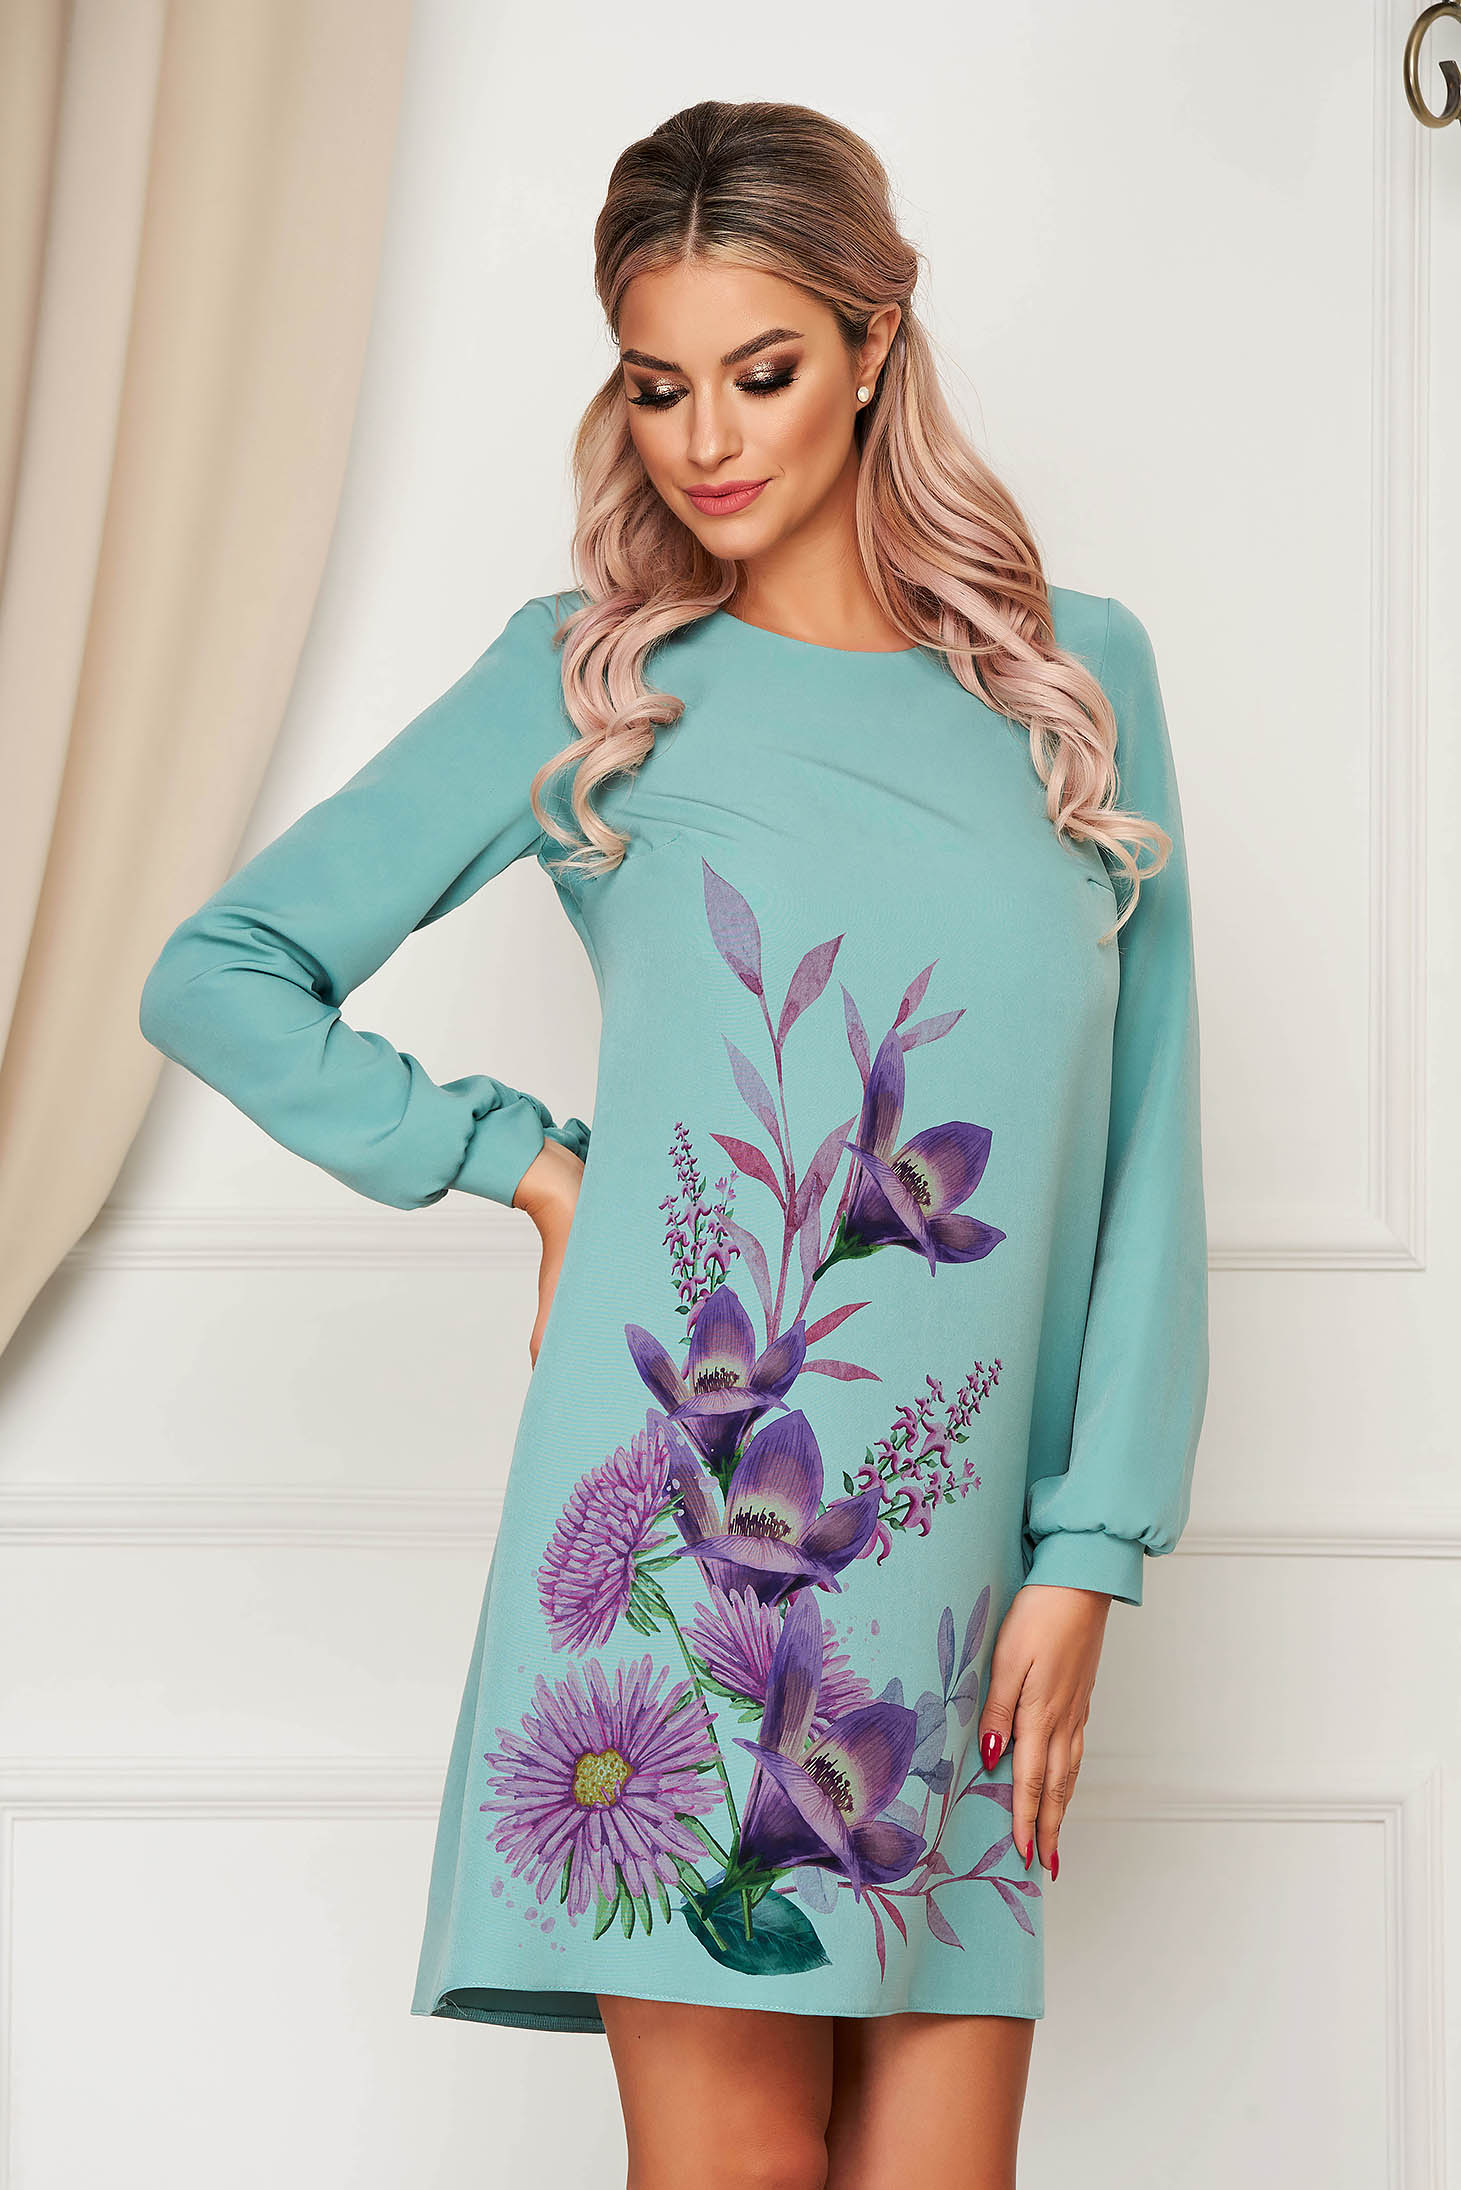 Elegant short cut turquoise dress StarShinerS a-line cloth with floral print